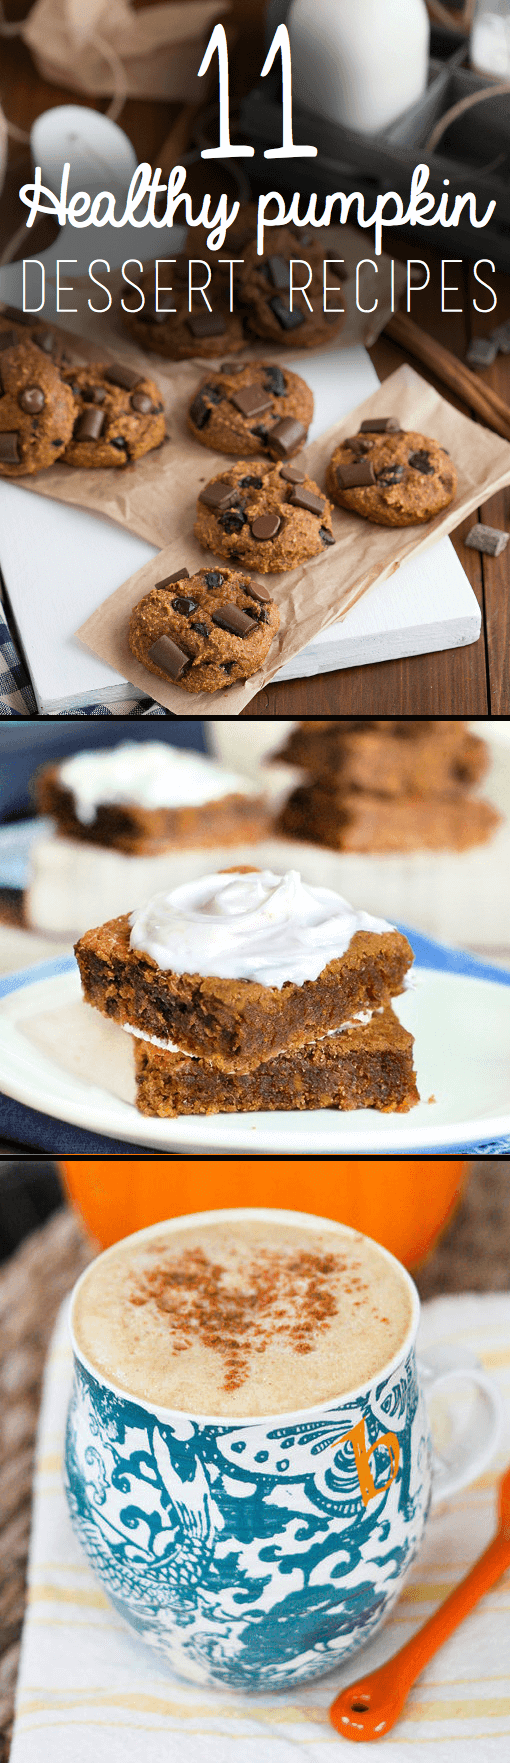 11 Healthy Pumpkin Dessert Recipes